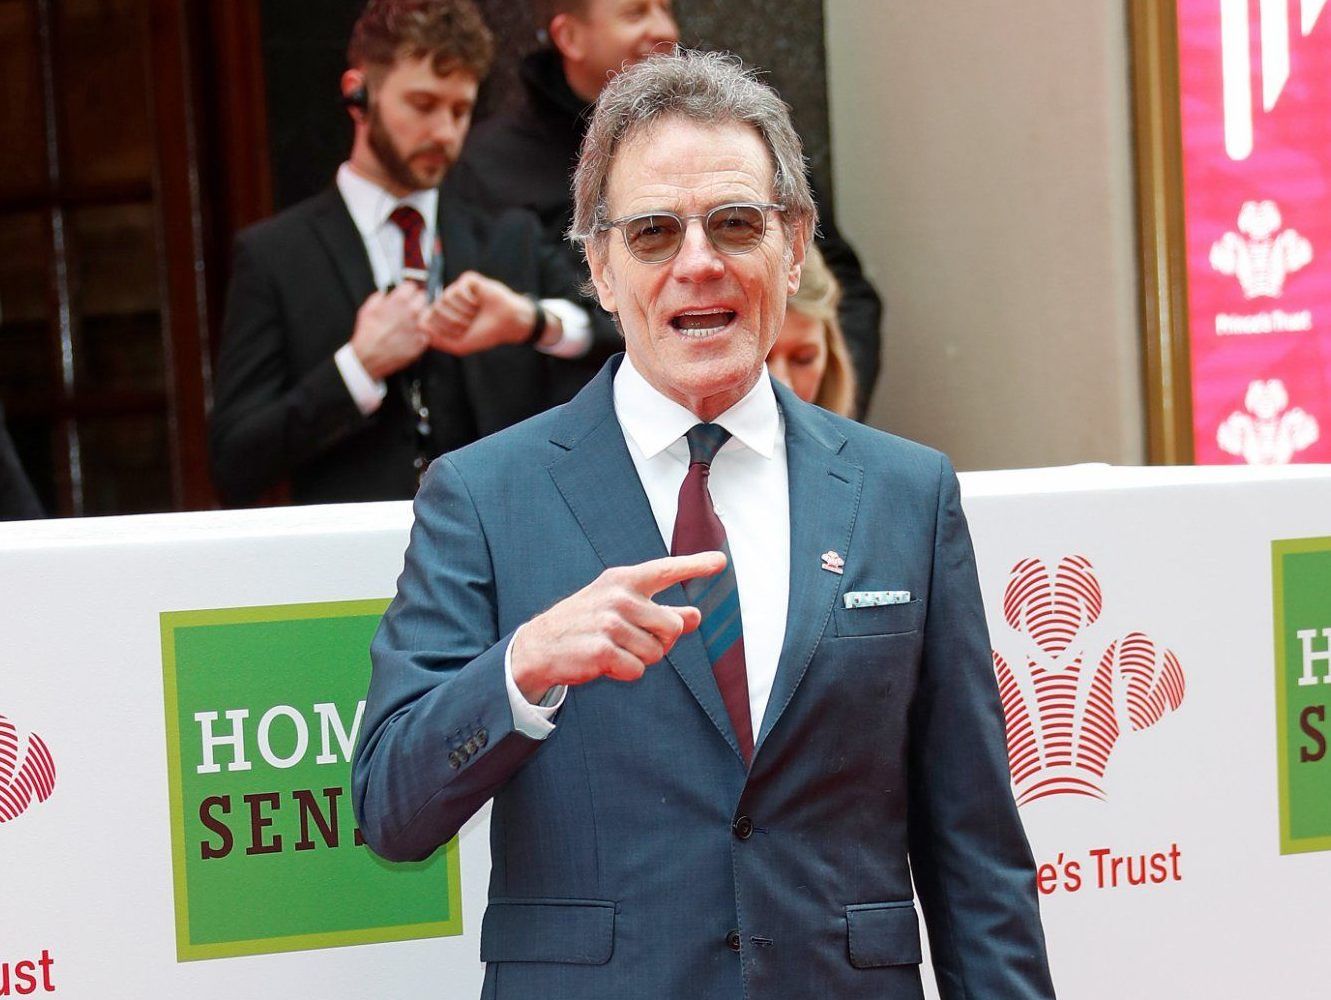 LONDON, ENGLAND - MARCH 06: Bryan Cranston attends 'The Prince's Trust' and TKMaxx with Homesense Awards at The London Palladium on March 6, 2018 in London, England. (Photo by David M. Benett/Dave Benett/Getty Images)